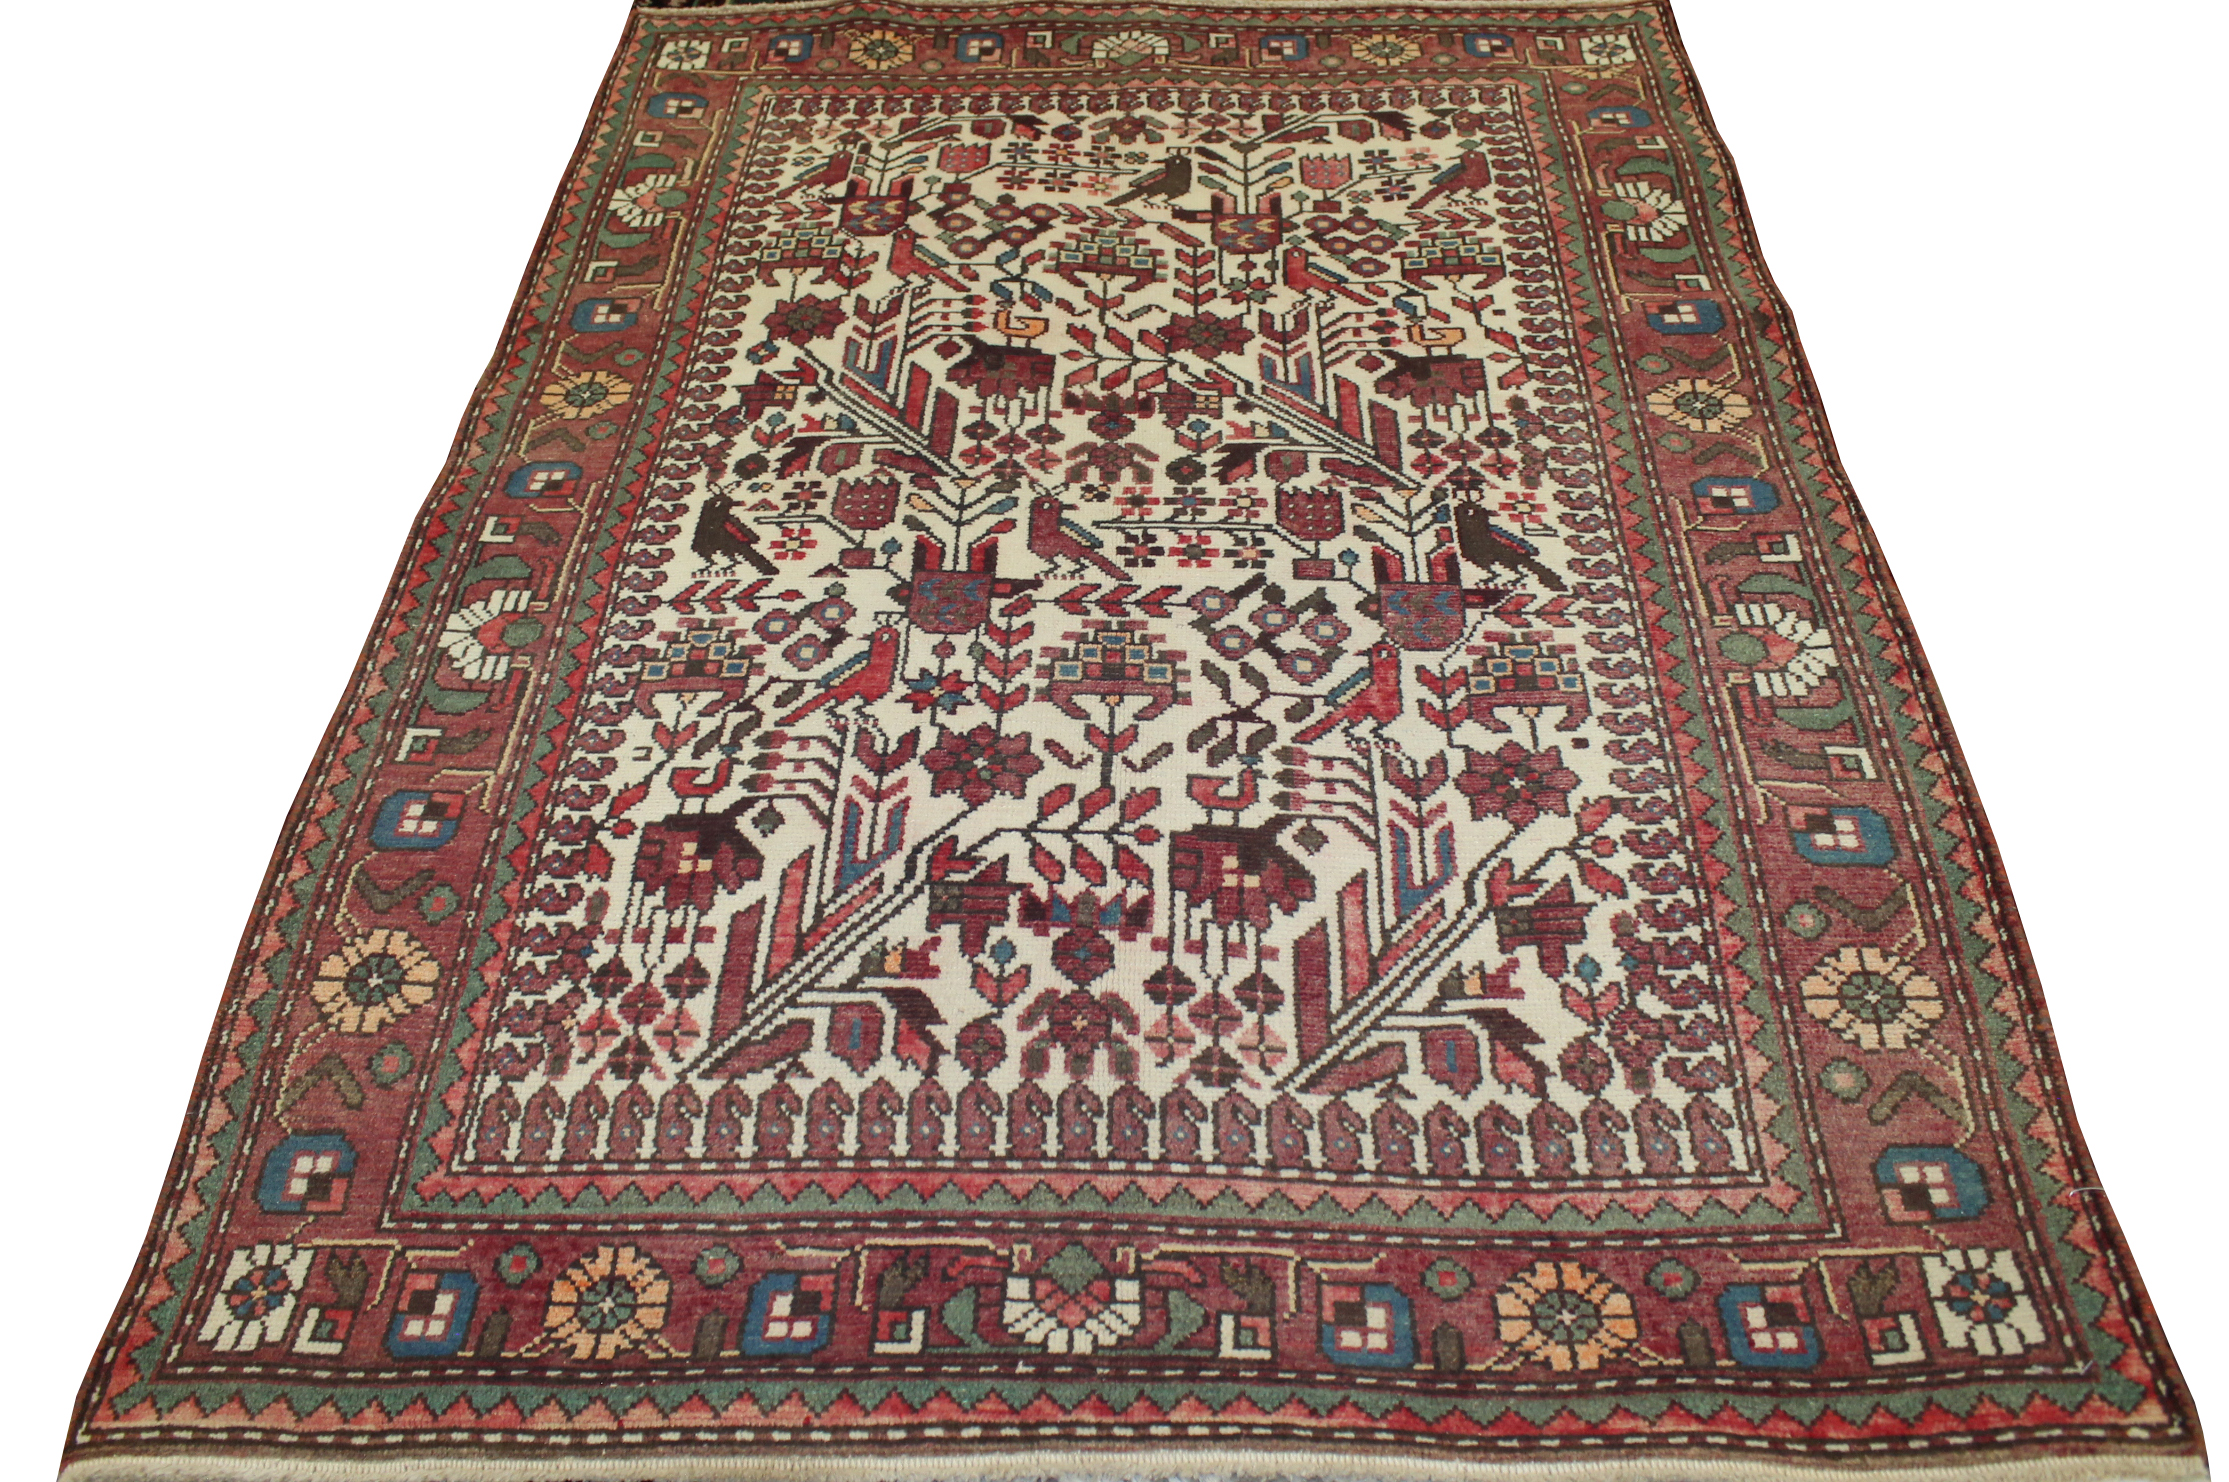 3x5 Vintage Hand Knotted Wool Area Rug - MR023639